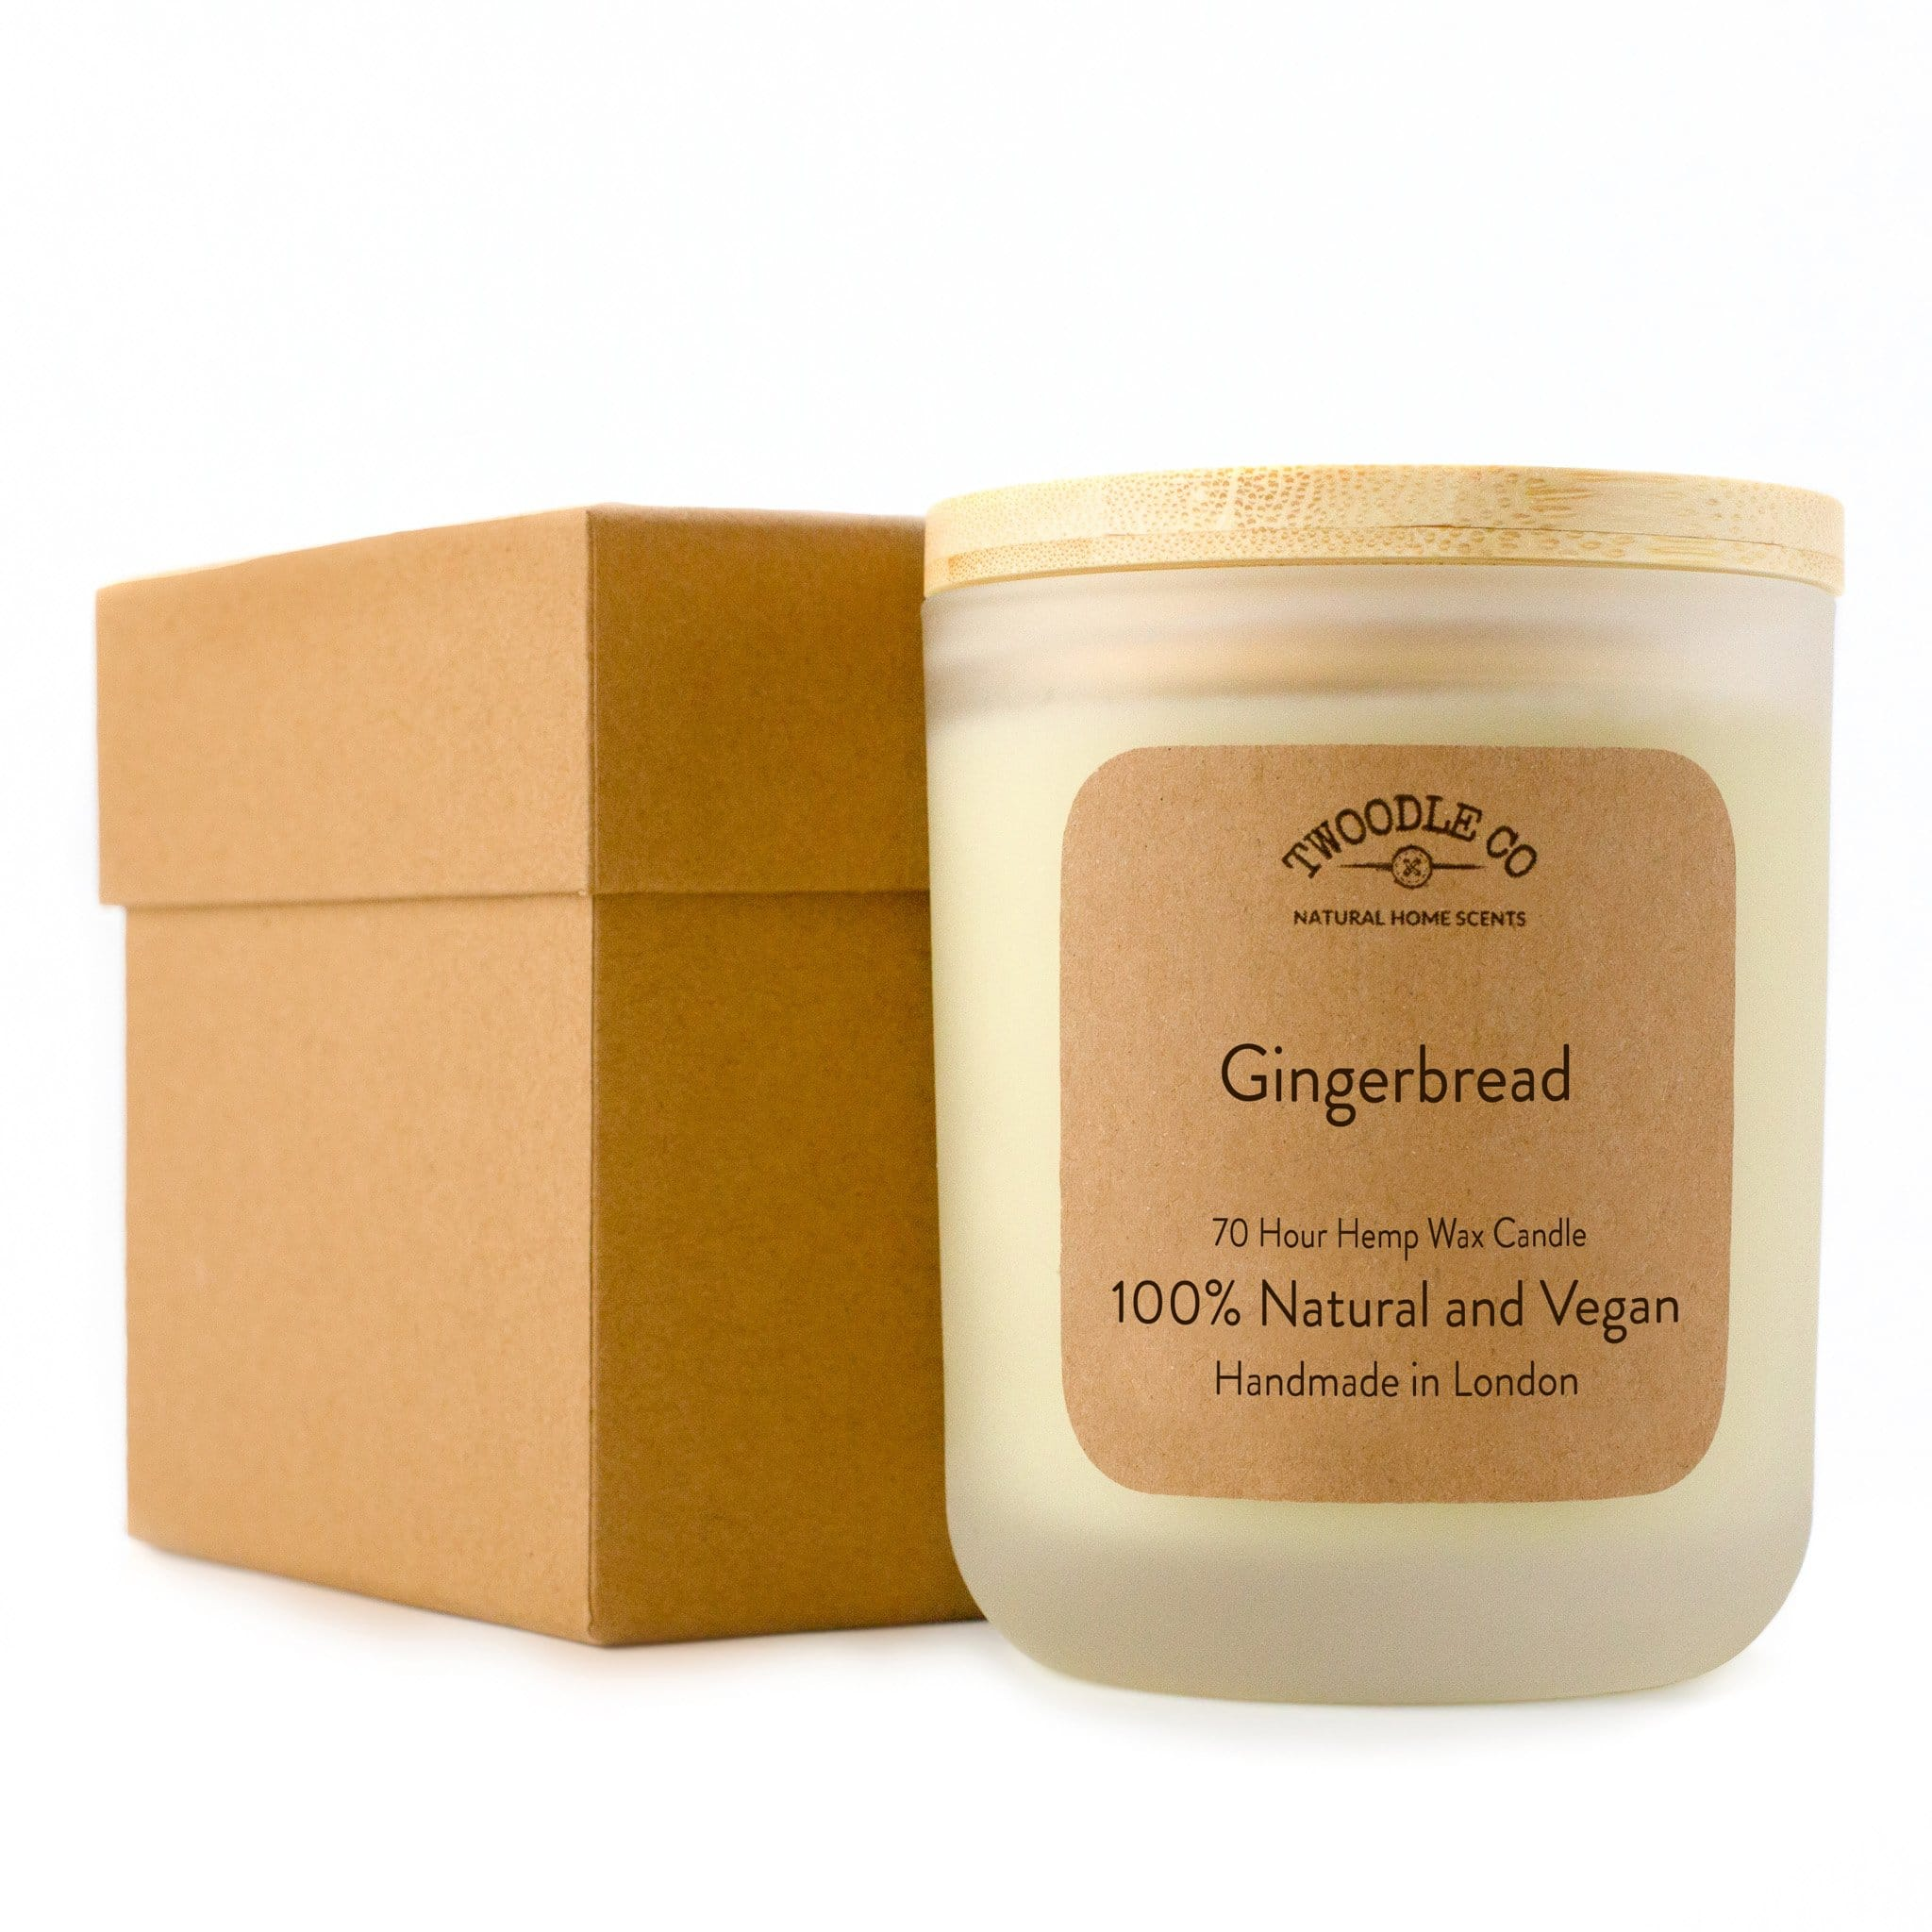 Gingerbread Large Scented Candle 70 Hour